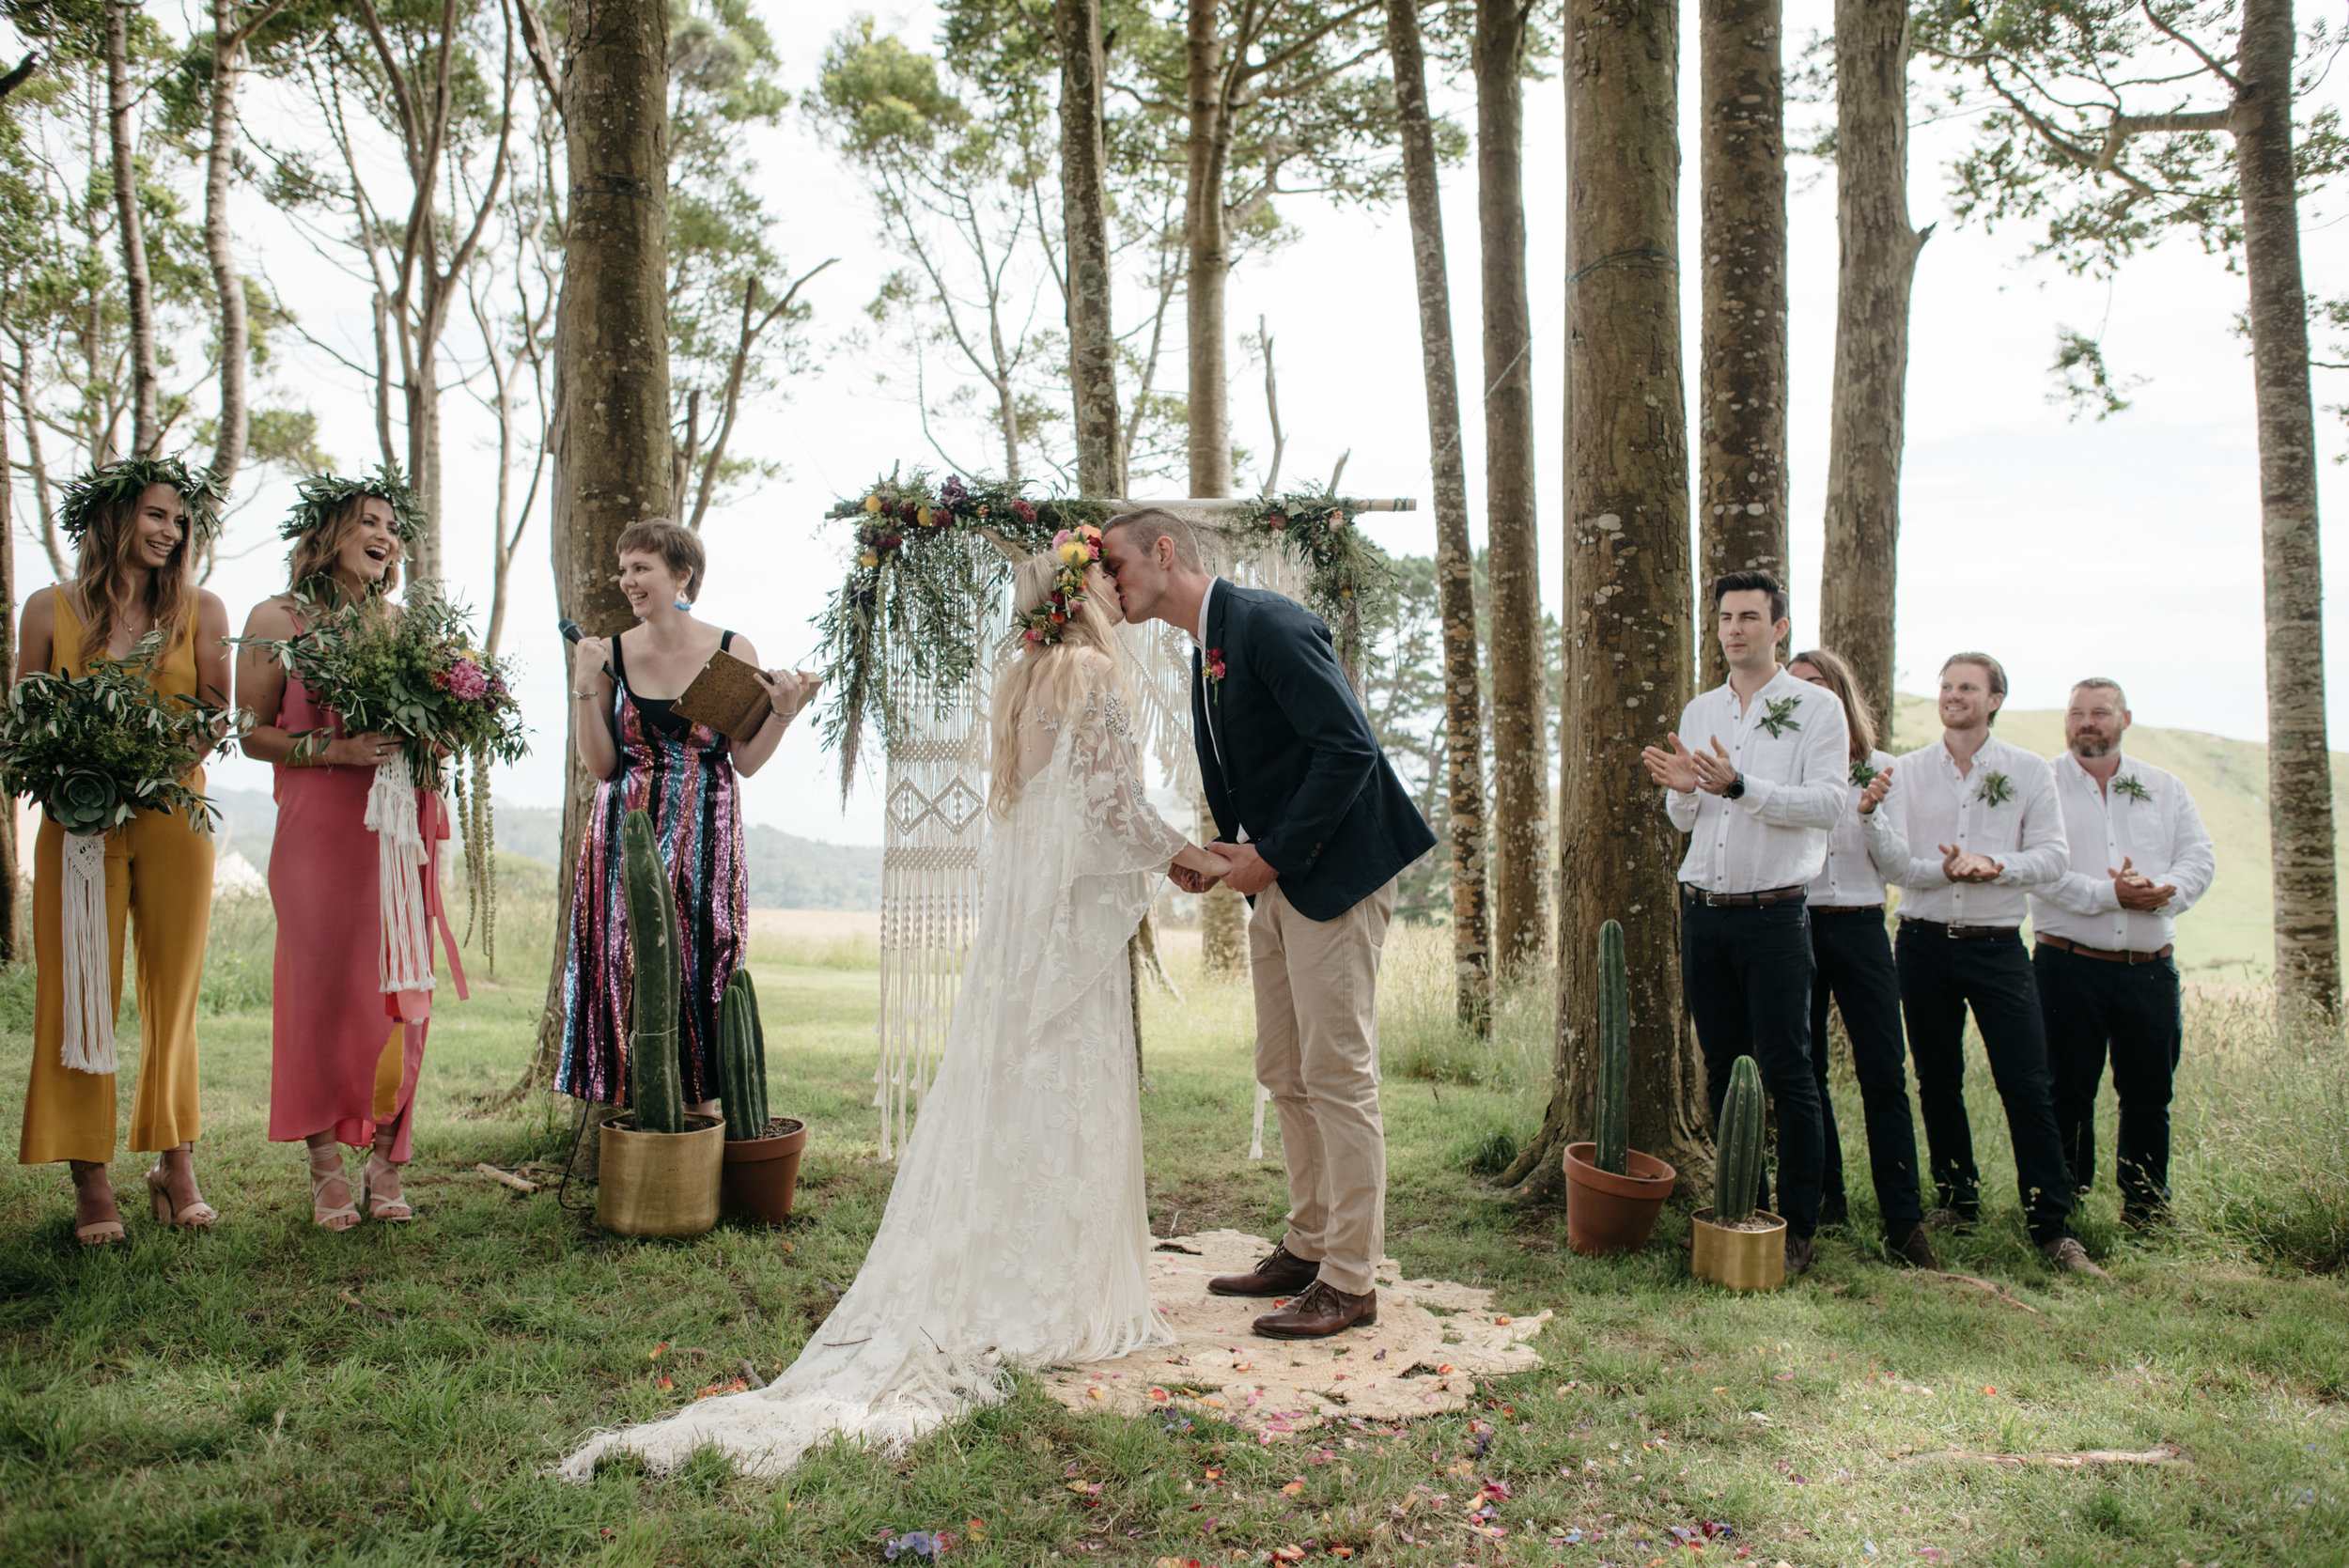 Josie and Ryan EPHEMERAL CREATIVE Jonkers Farm New Zealand Wedding first kiss as husband and wife